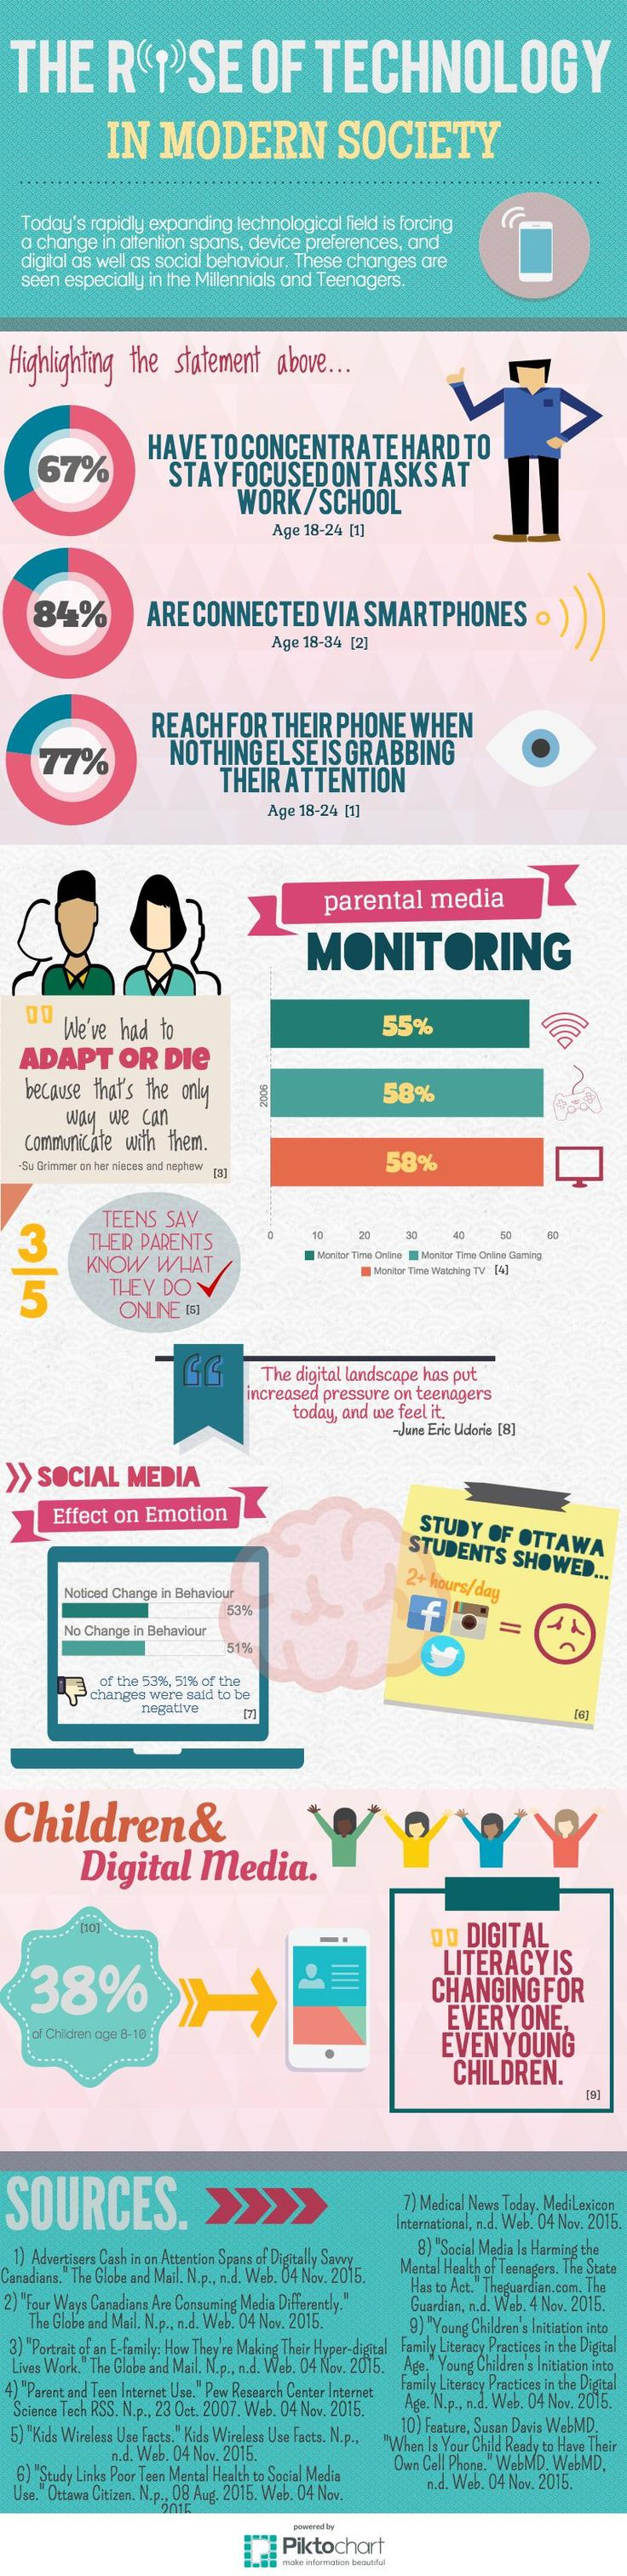 Infographic for FILM240 by Alex